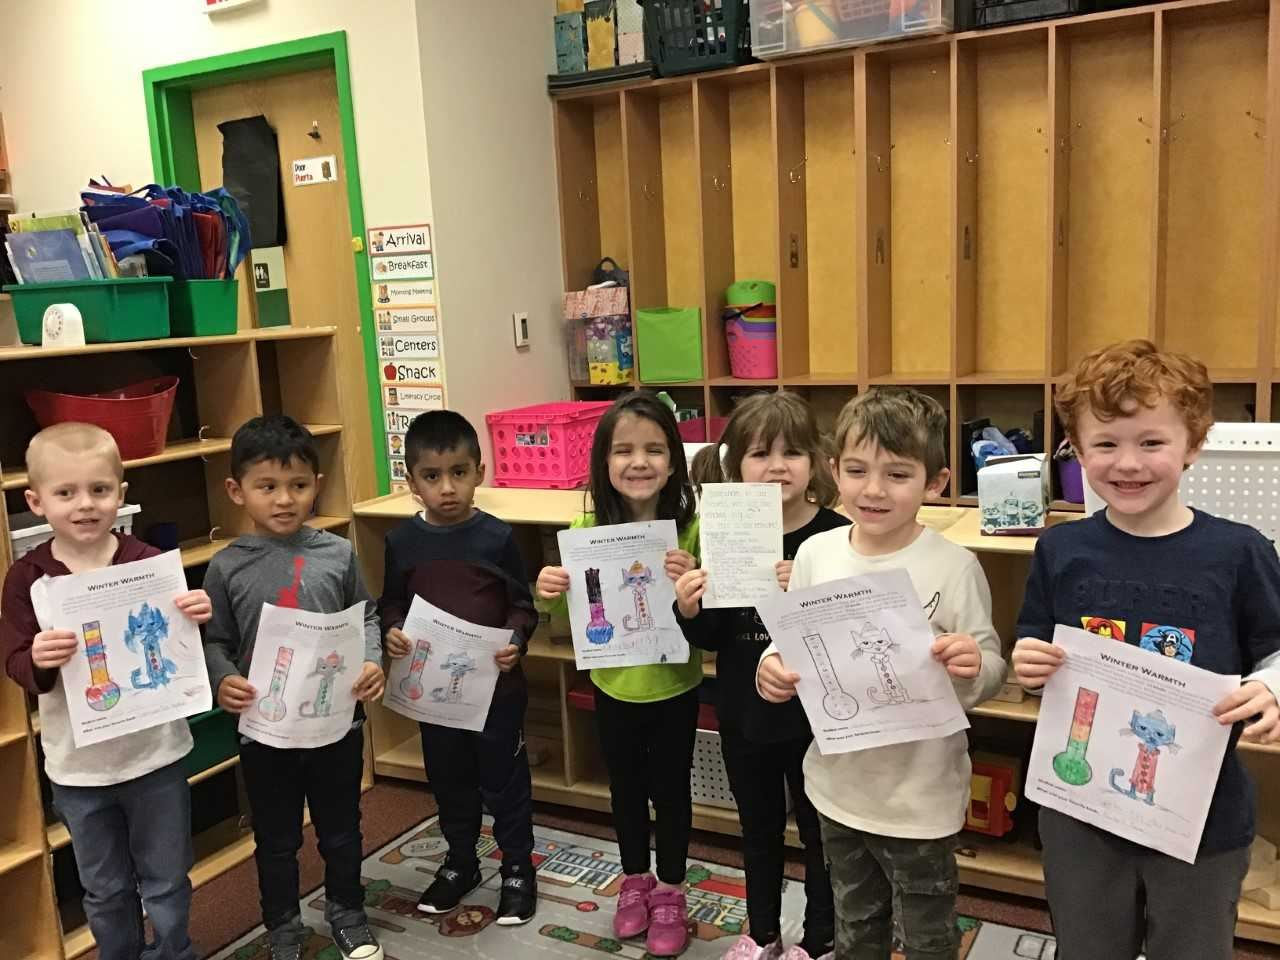 Mrs Stephens pre-K class was given a reading challenge over Winter Break. These seven students comp